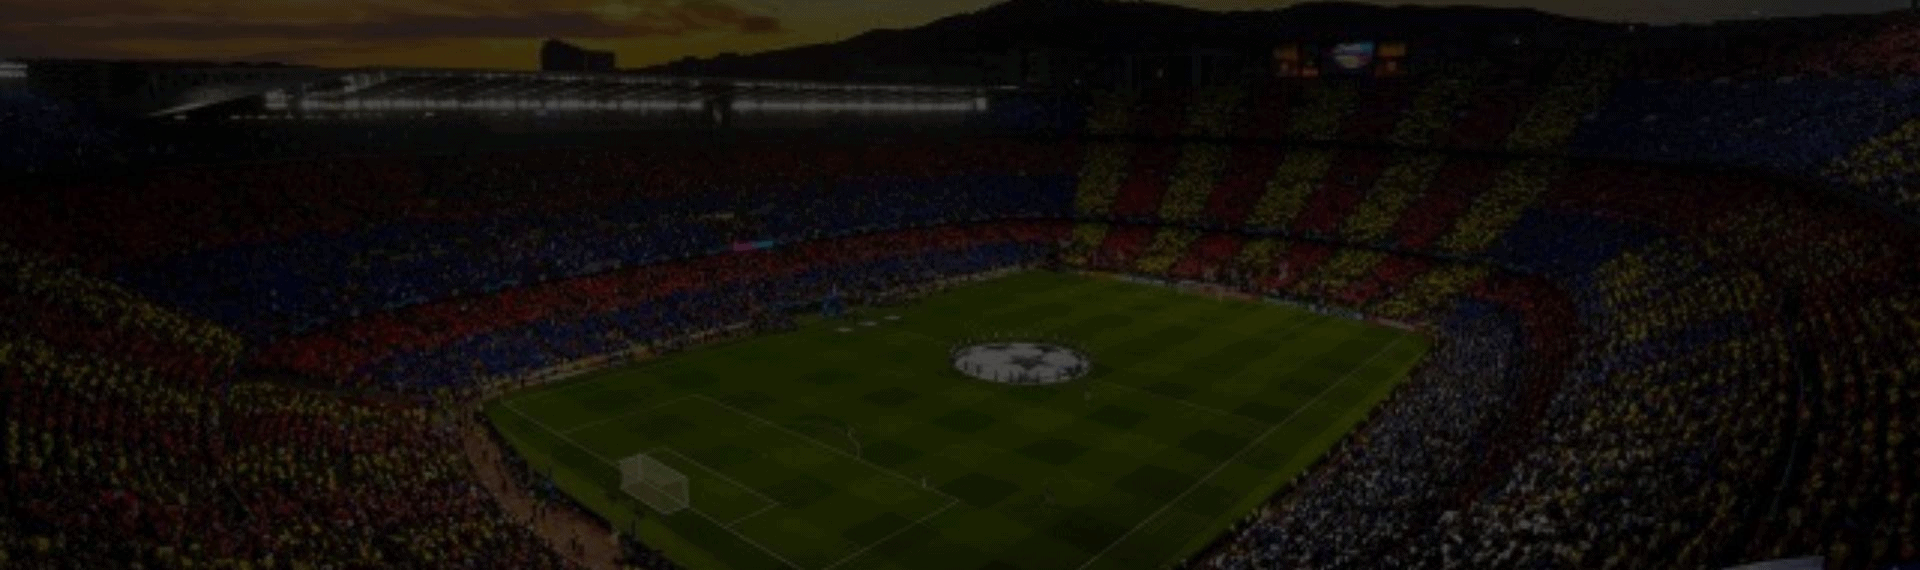 How to Watch El-clasico live